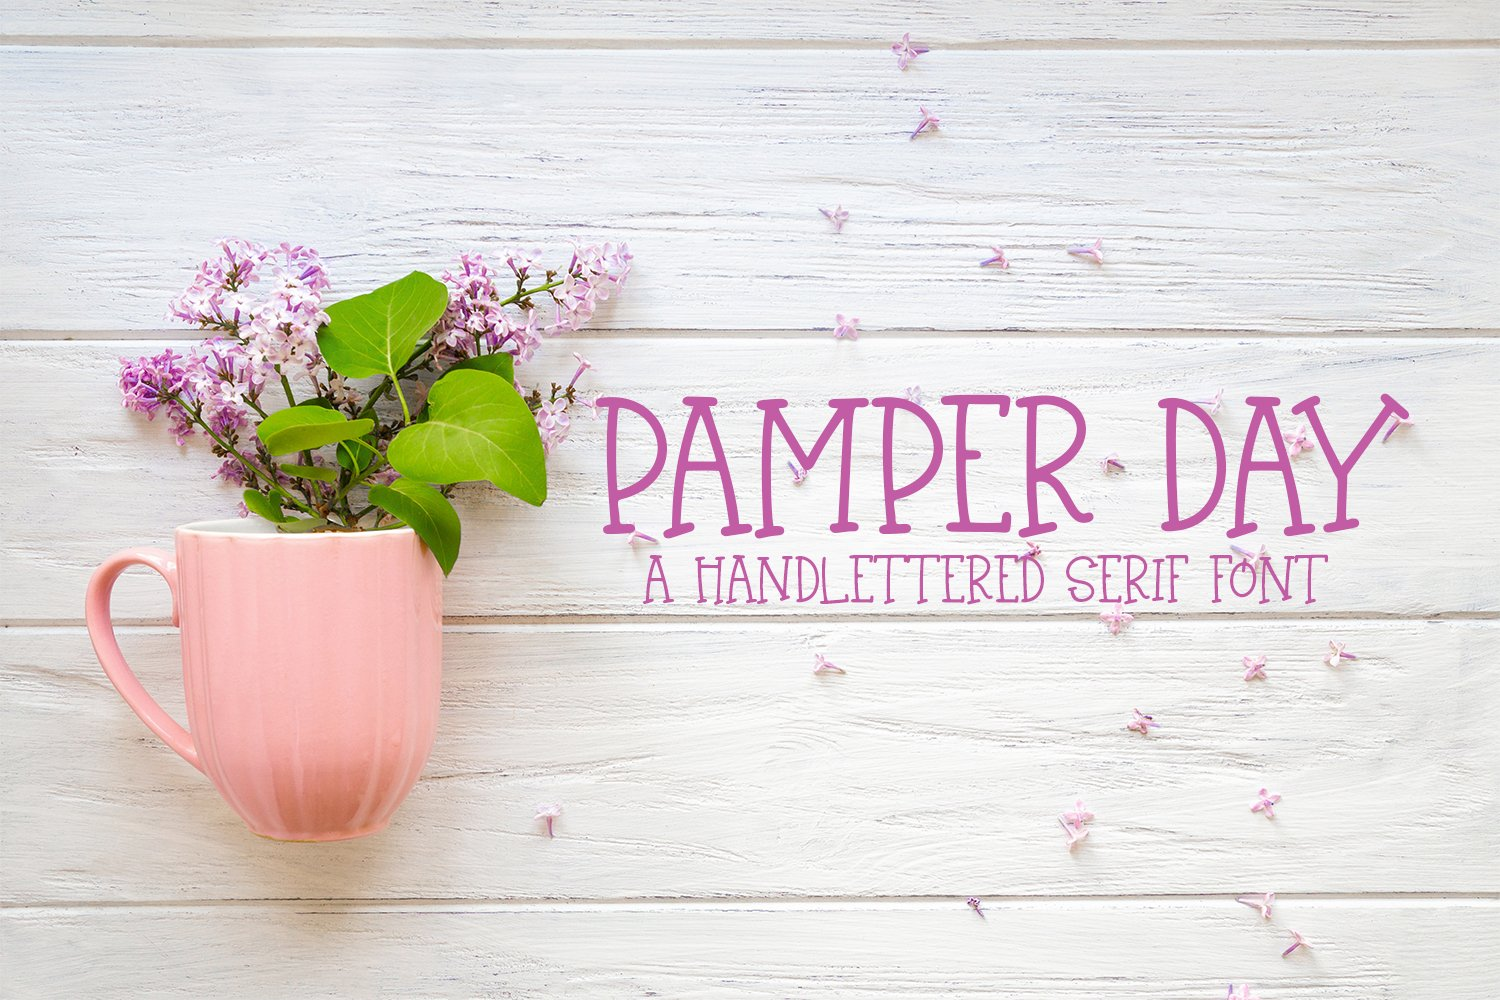 Pamper Day - A Hand-Lettered Serif Font example image 1